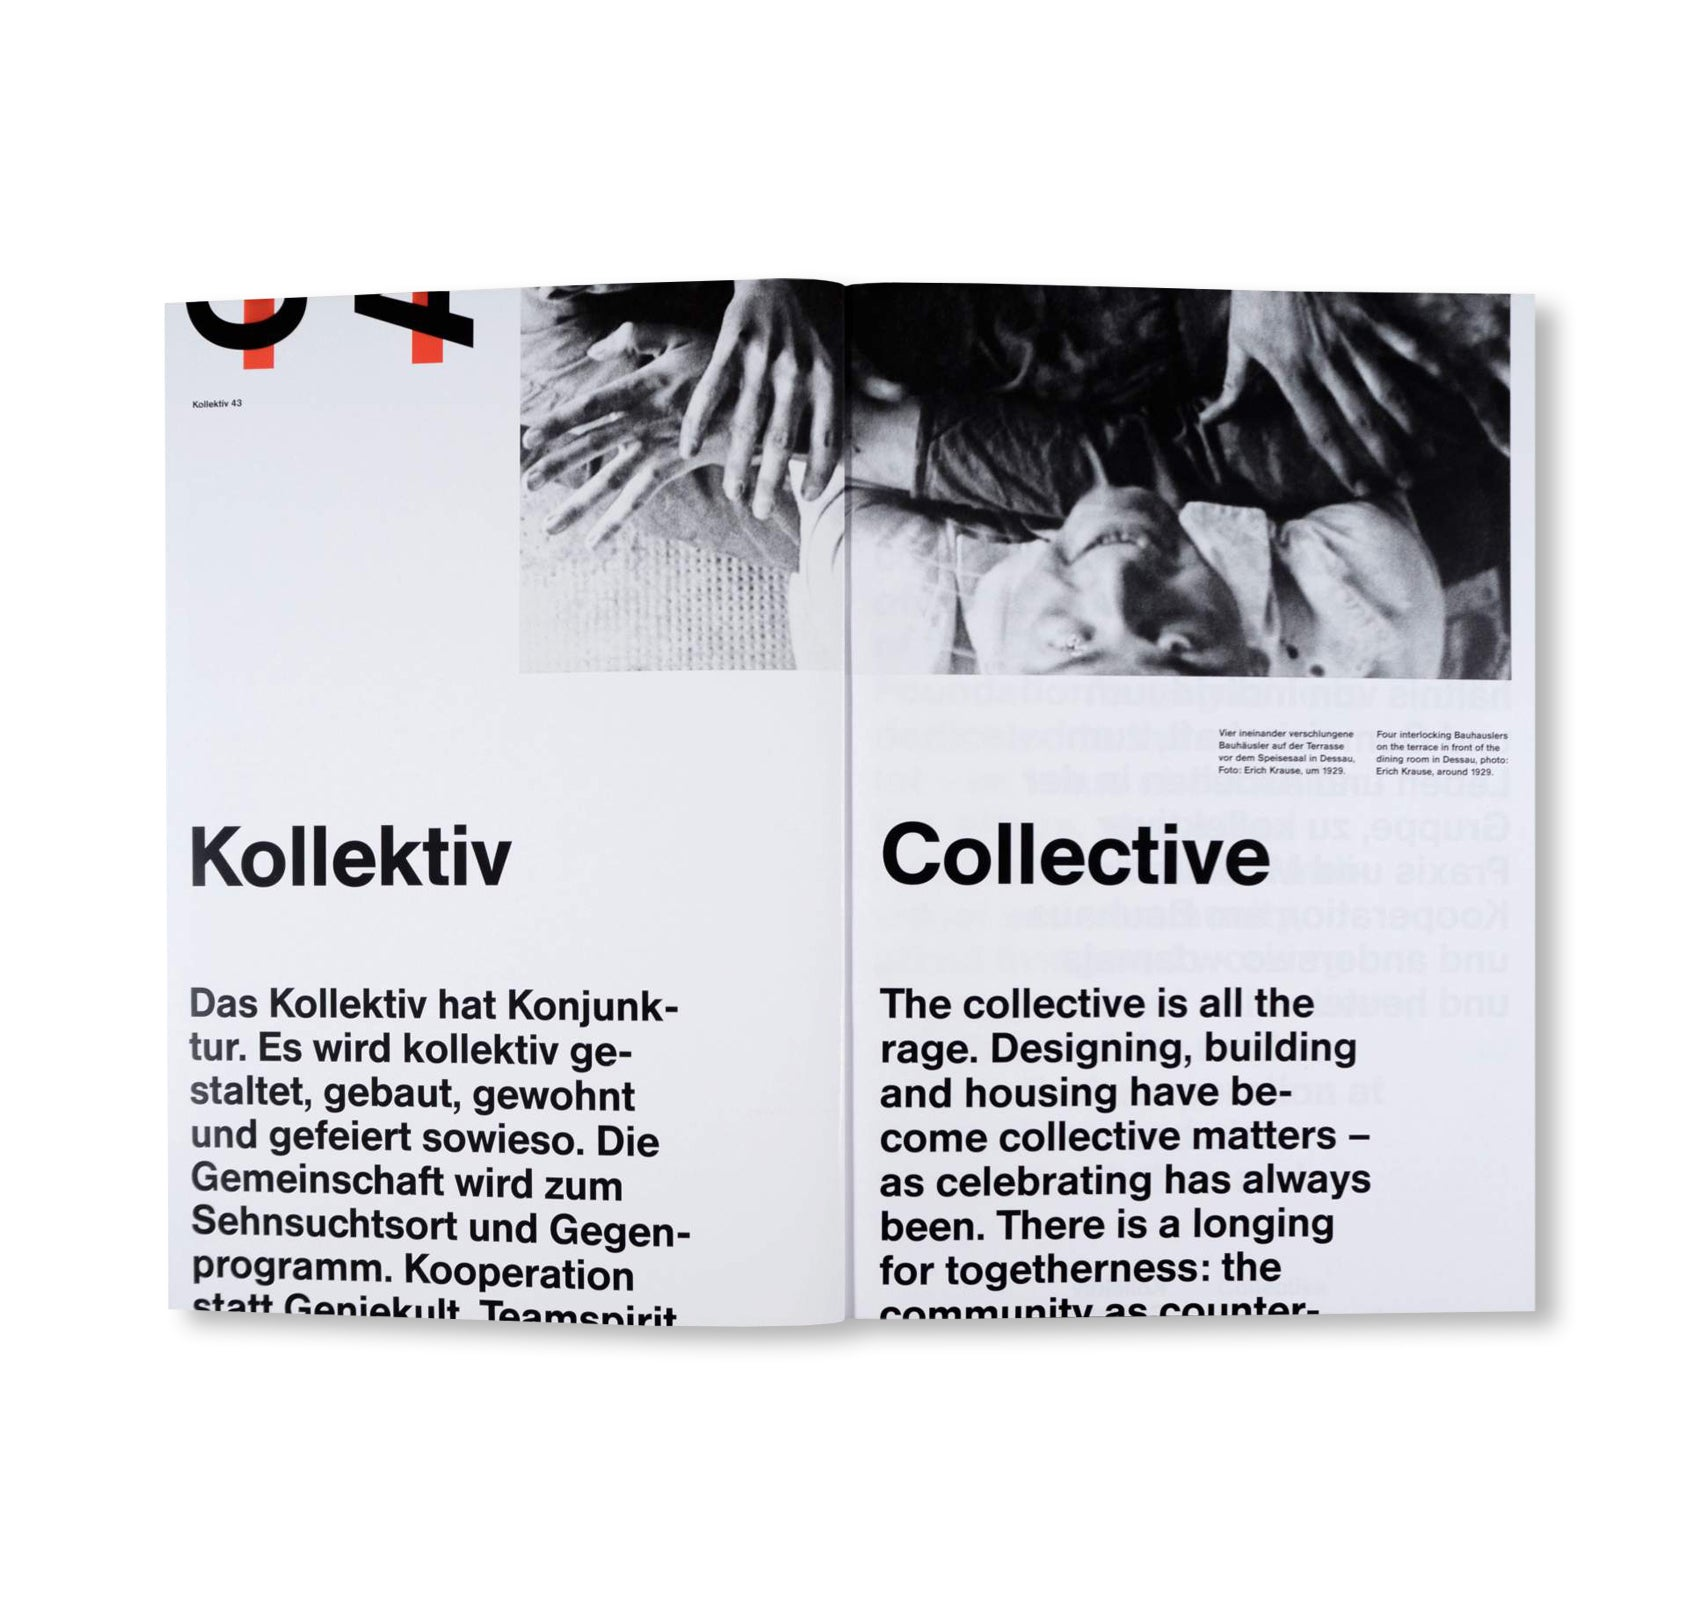 COLLECTIVE - BAUHAUS 7. The Bauhaus Dessau Foundation's Magazine by Stiftung Bauhaus Dessau